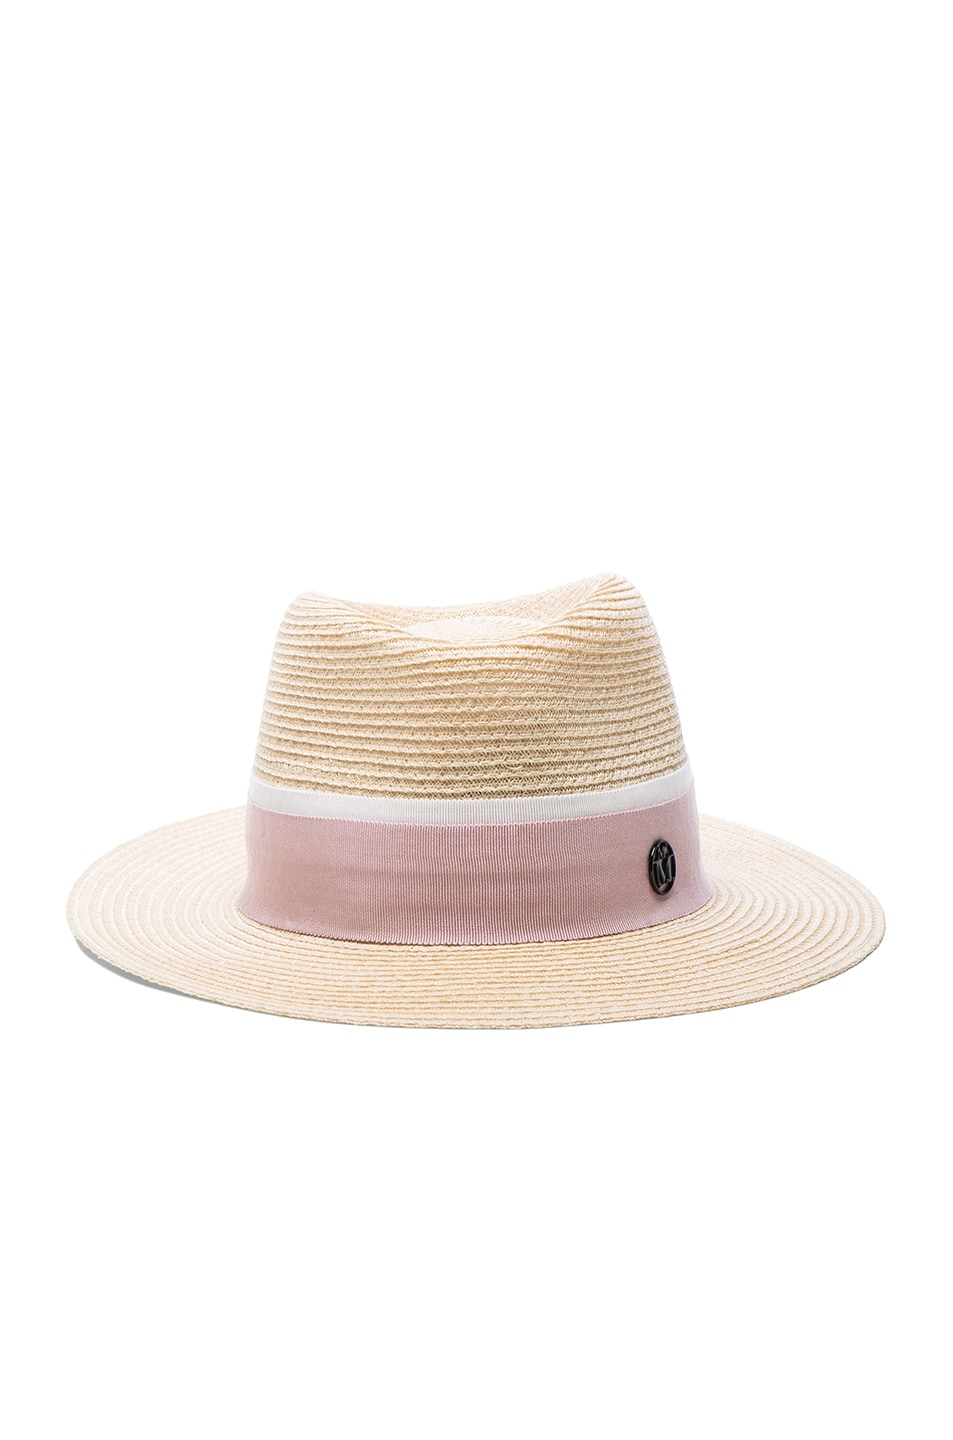 Maison Michel Andre Straw Hat In Natural Pink Fwrd 3fa005f7a939